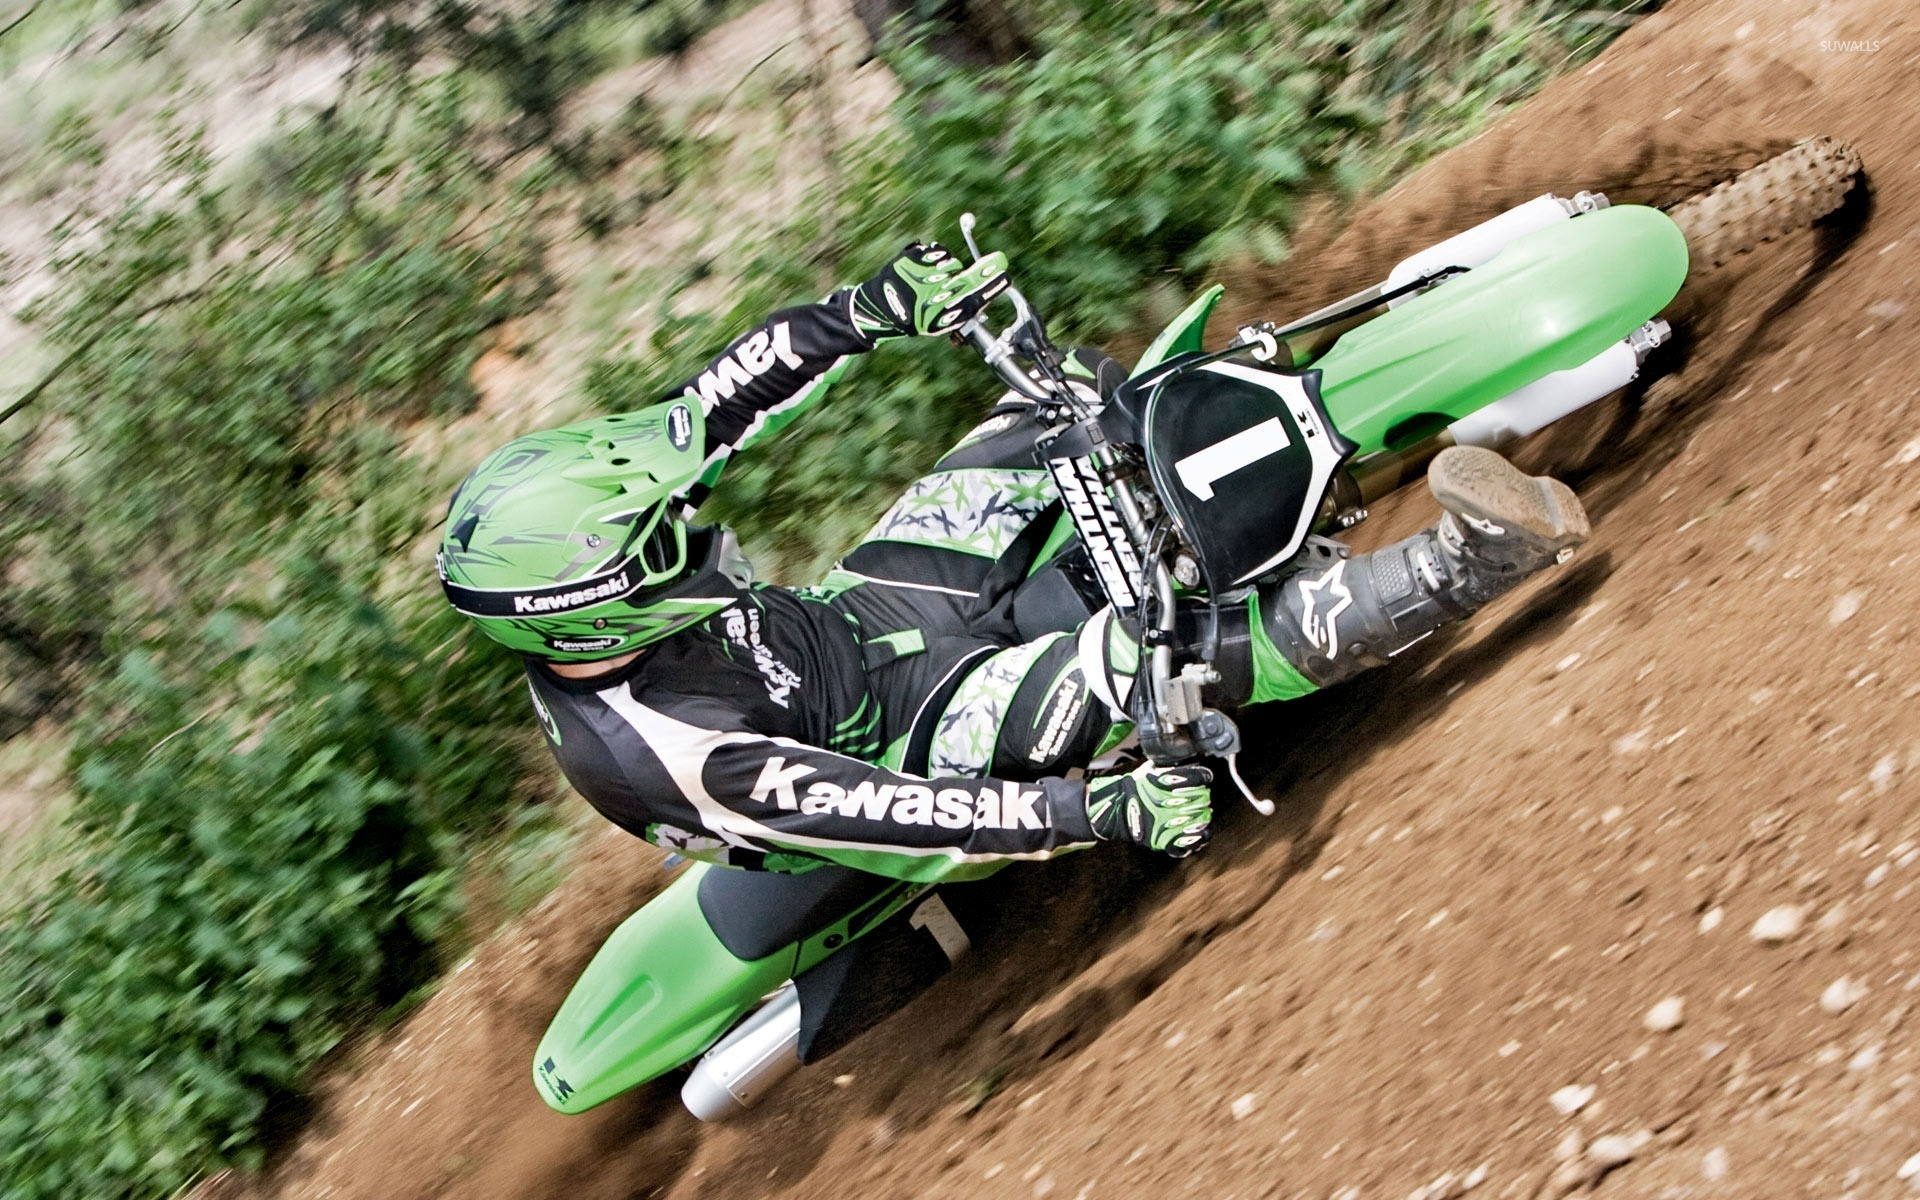 Kawasaki Kx450f 3 Wallpaper Motorcycle Wallpapers 23996